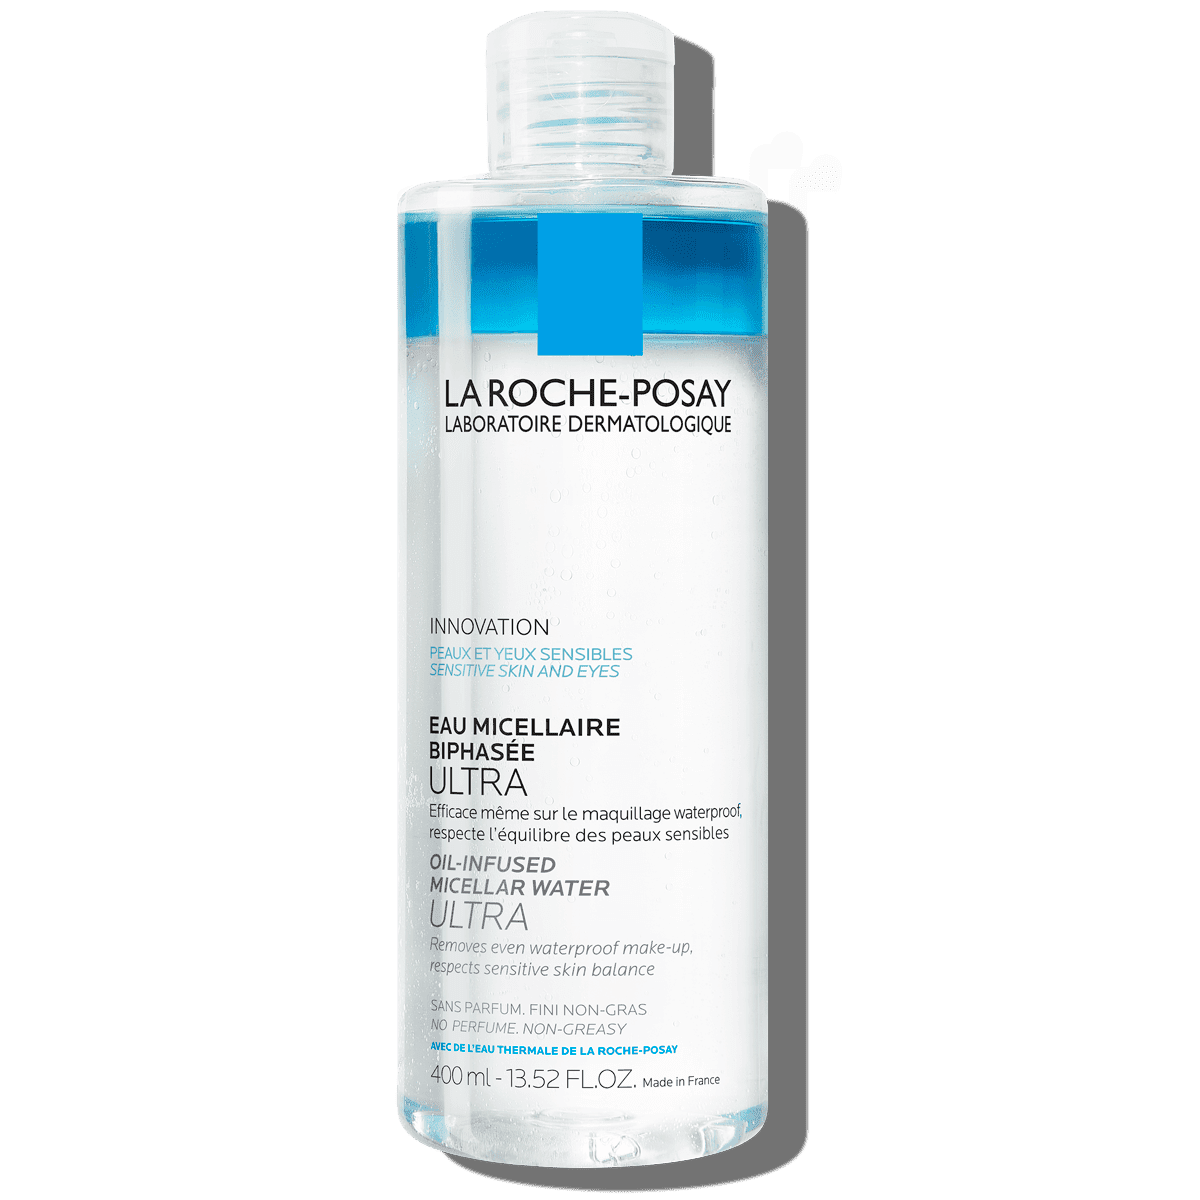 LaRochePosay-Product-Face-Physiological-Oil-Infused-Micellar-Water-Ultra-400ml-3337875725897-FSS